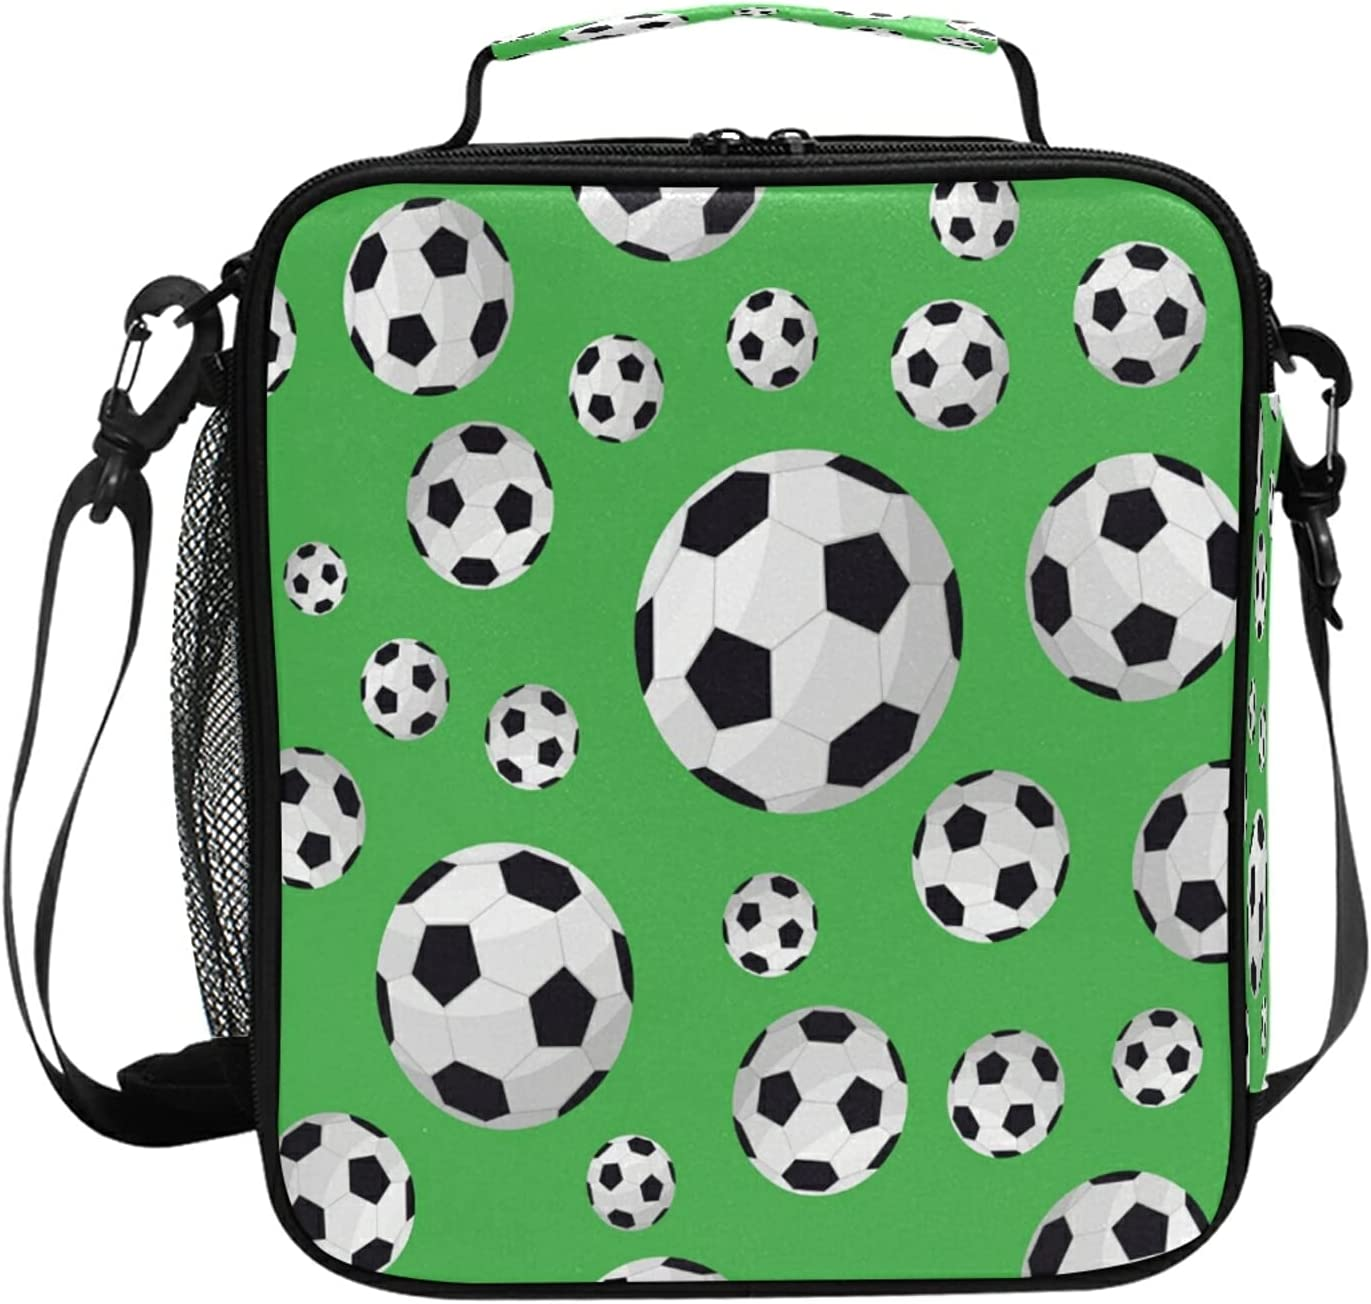 Lunch National uniform Inventory cleanup selling sale free shipping Bag Kids Boys Girls Insulated Game Soccer Football Lunchbo